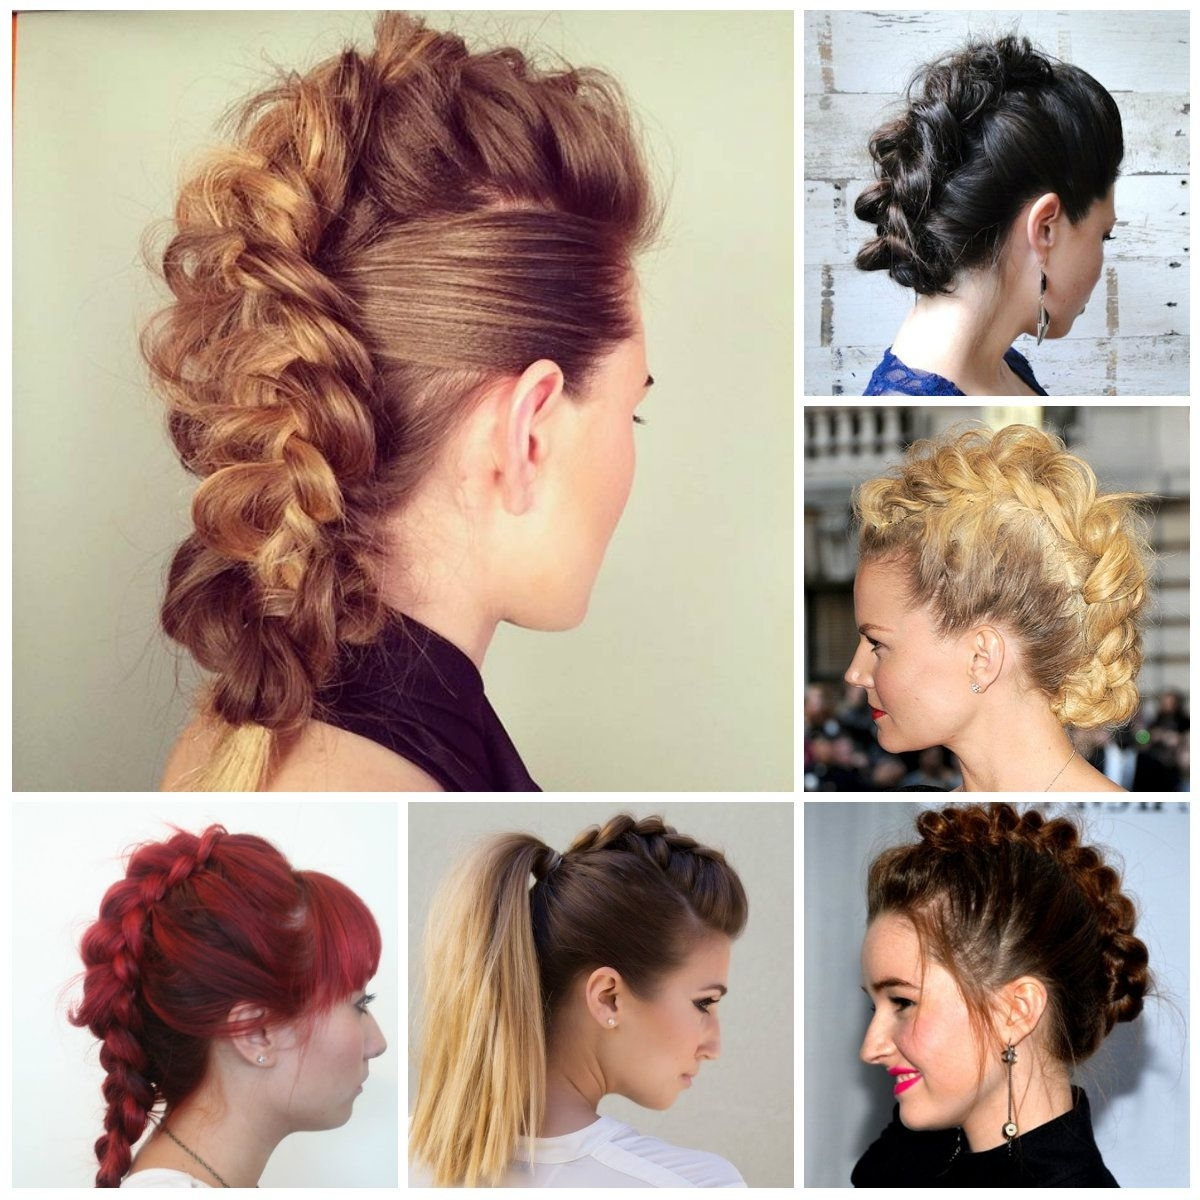 Haircuts, Hairstyles 2016 And (View 8 of 20)